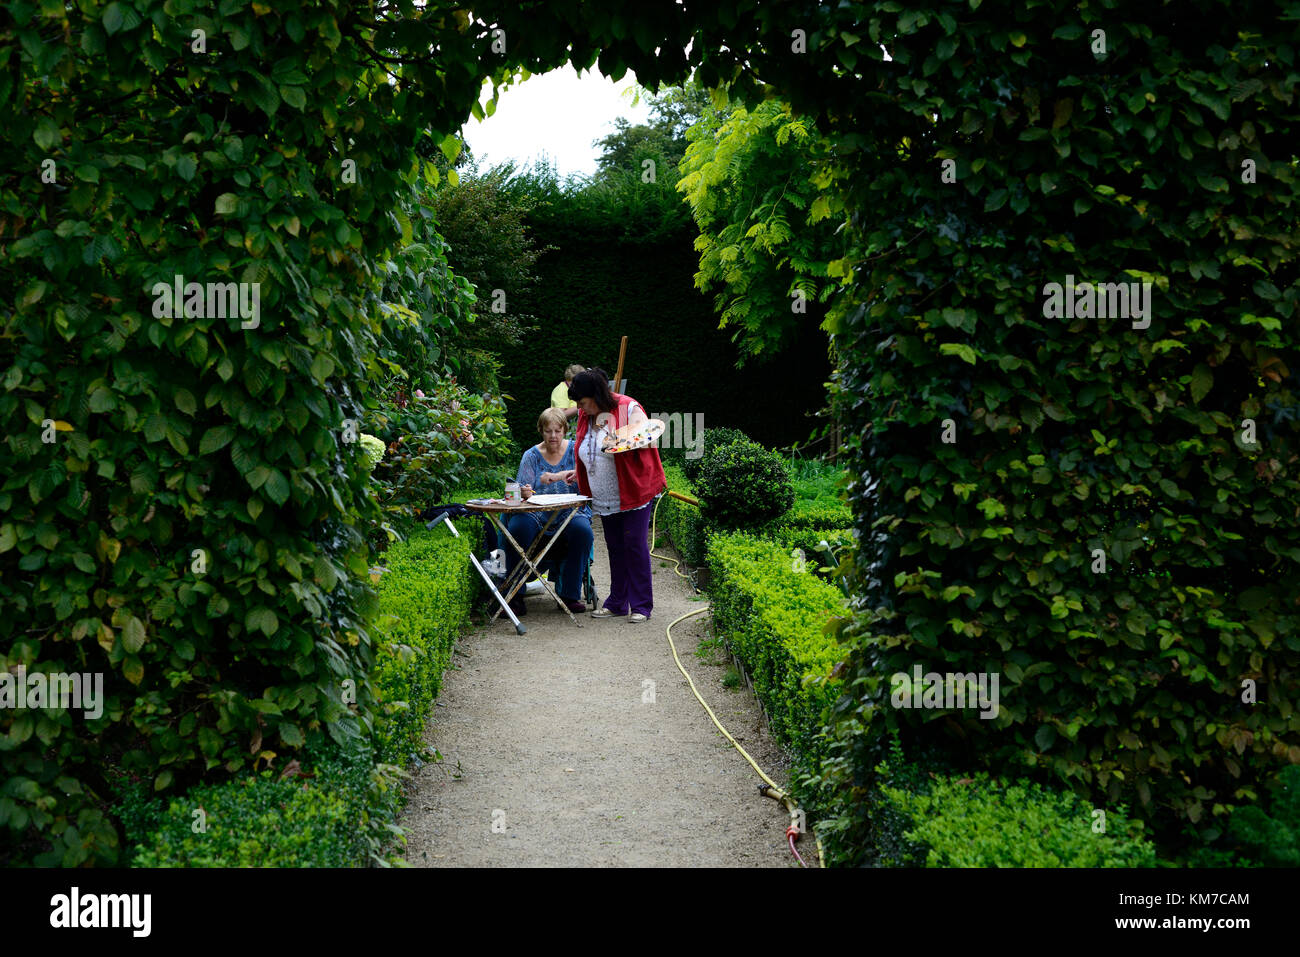 garden,artist,paint,painting,painter,teach,teaching,school,workshops,workshop,altamont garden,art,outdoor,outdoors,easel,carlow,Ireland,RM - Stock Image